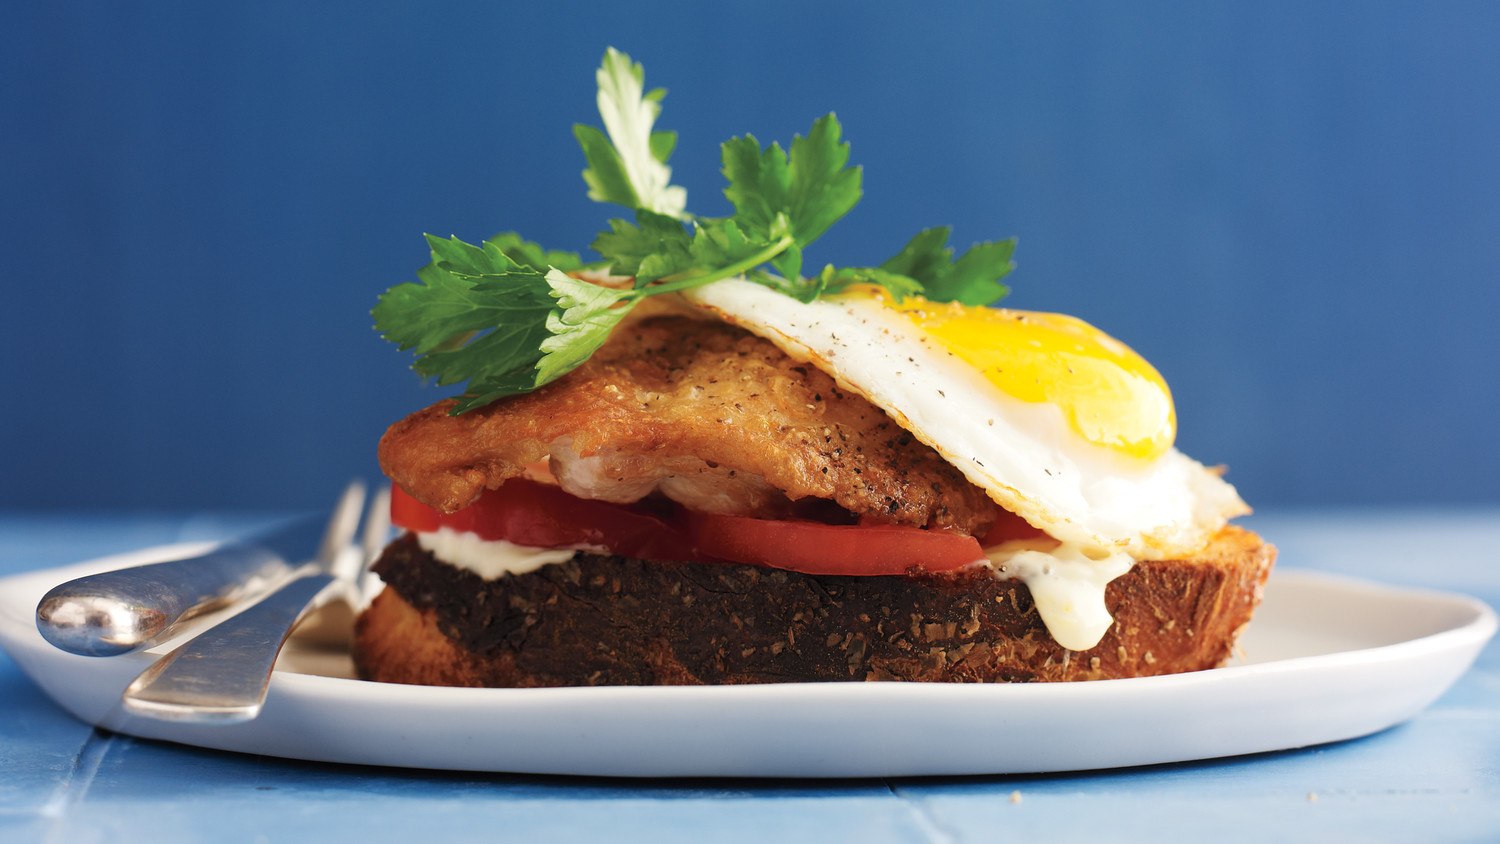 CrispyChicken and Egg Sandwich